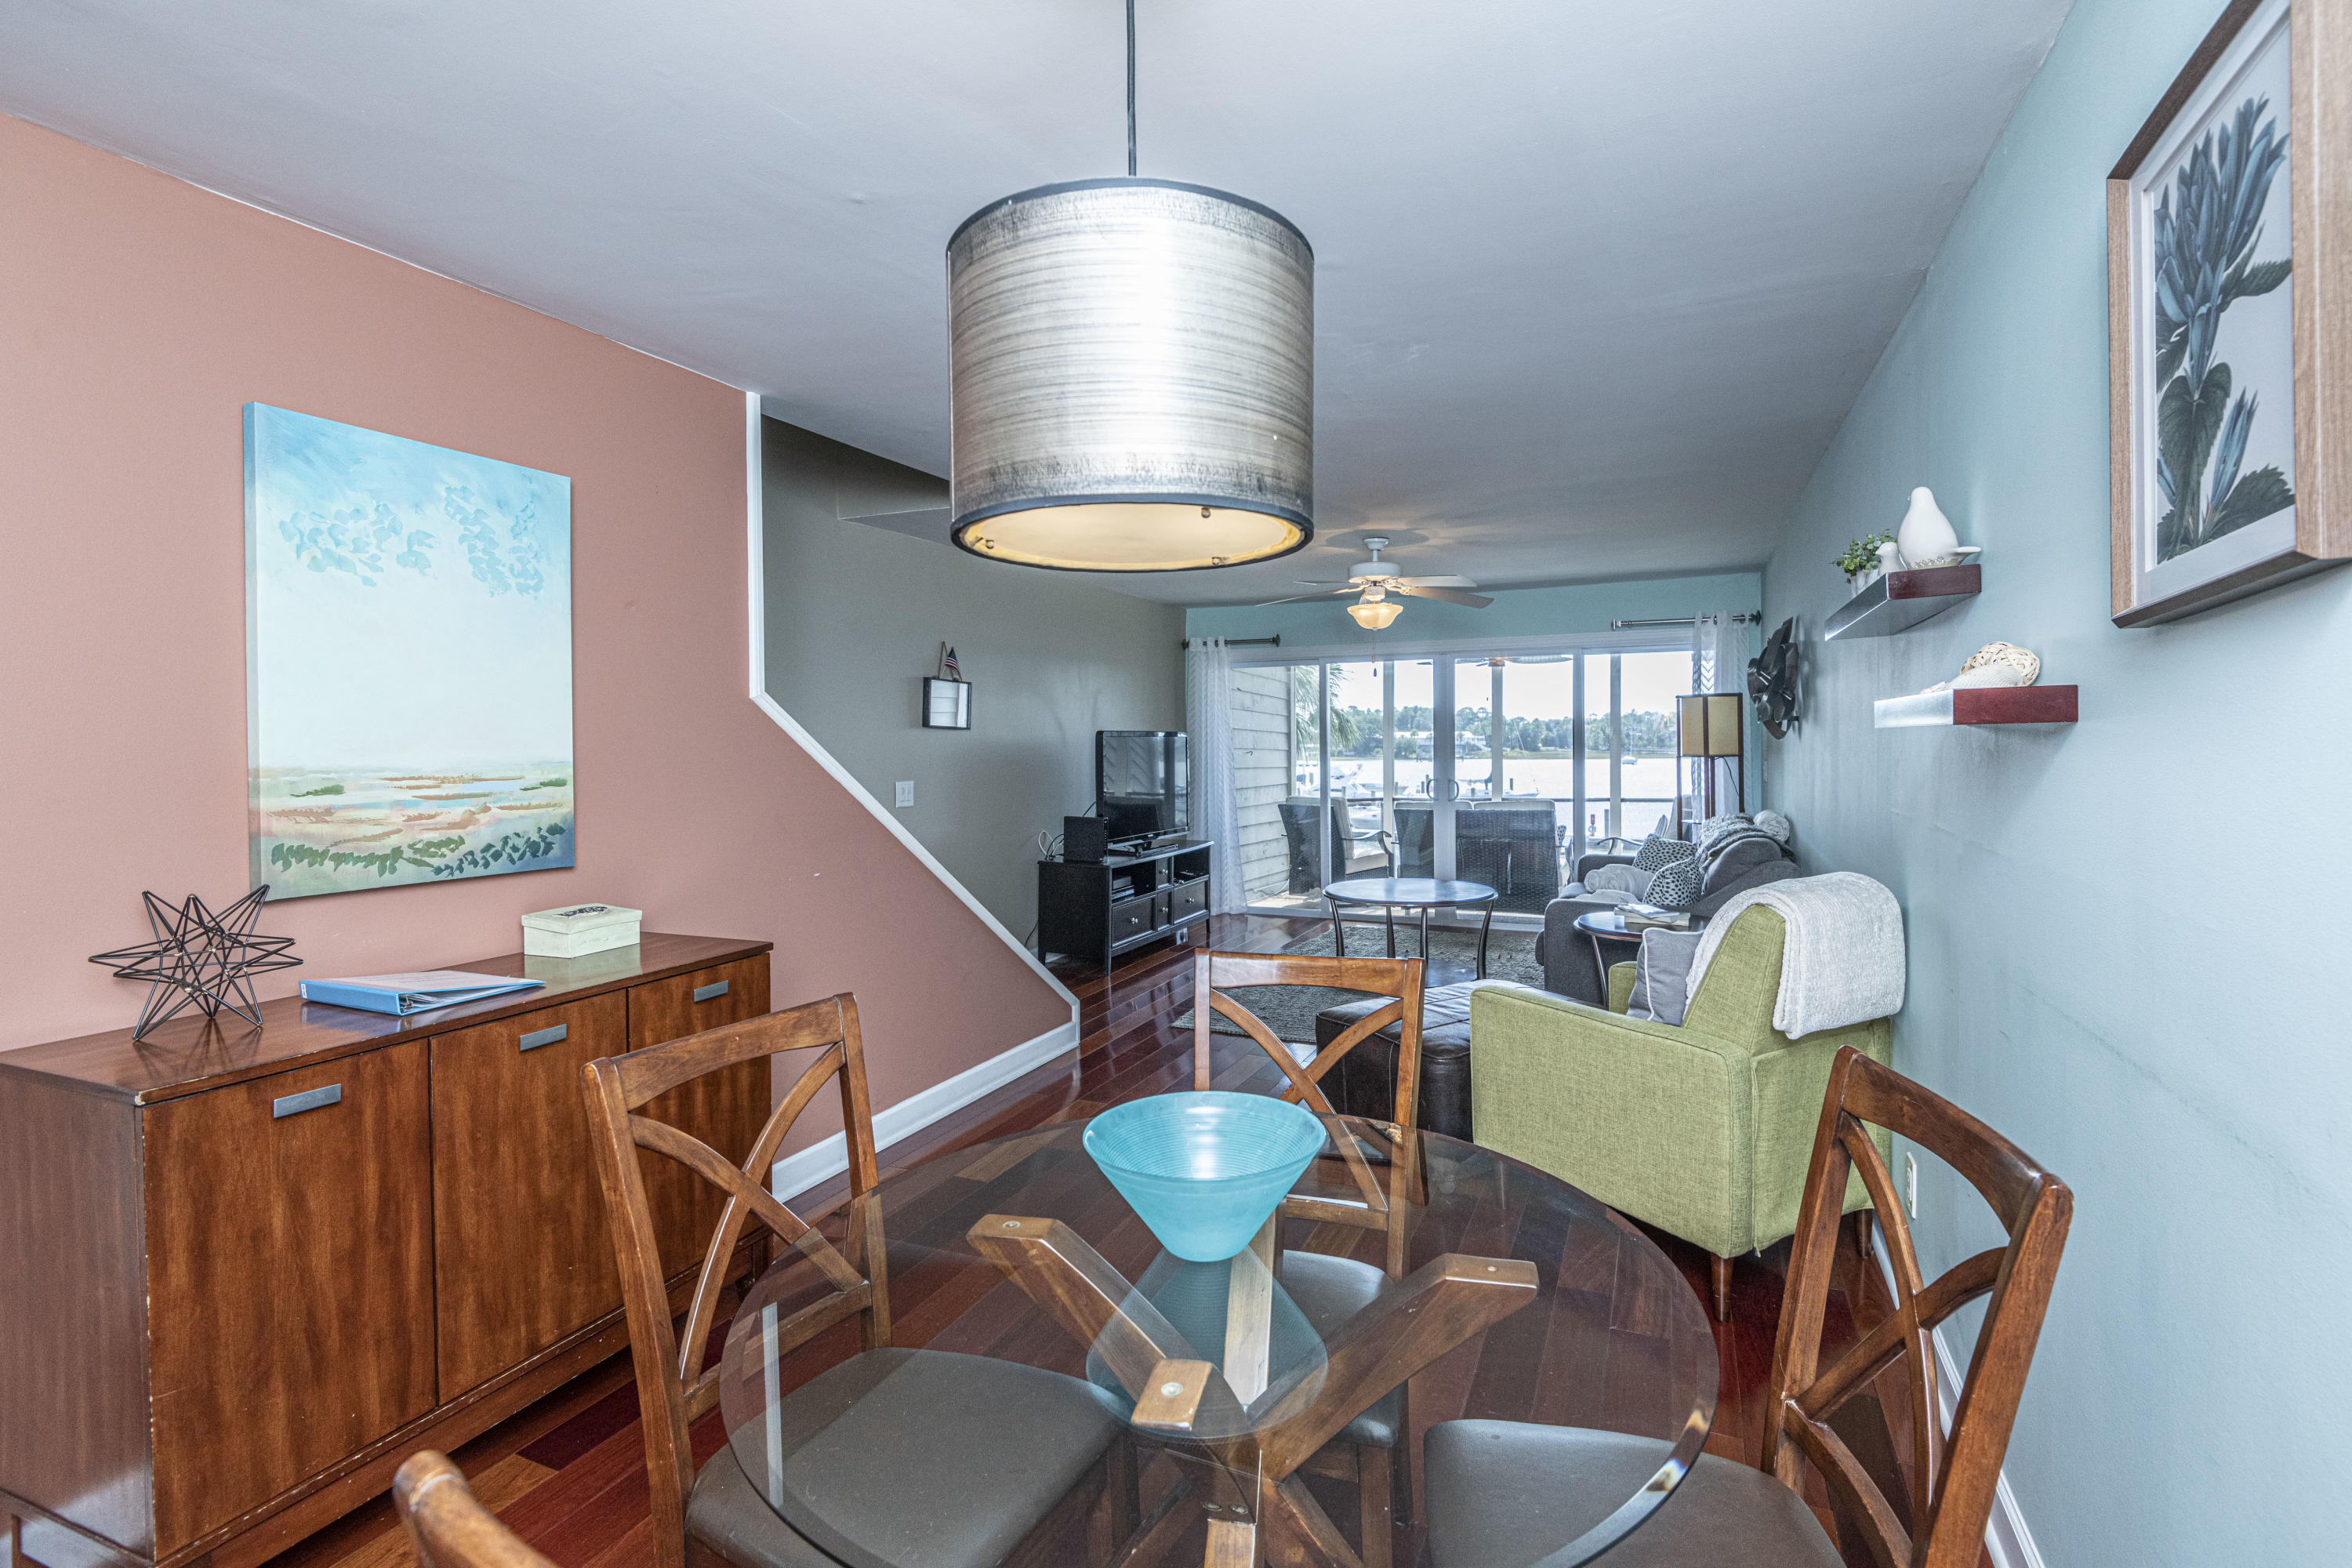 Mariners Cay Homes For Sale - 60 Mariners Cay, Folly Beach, SC - 39